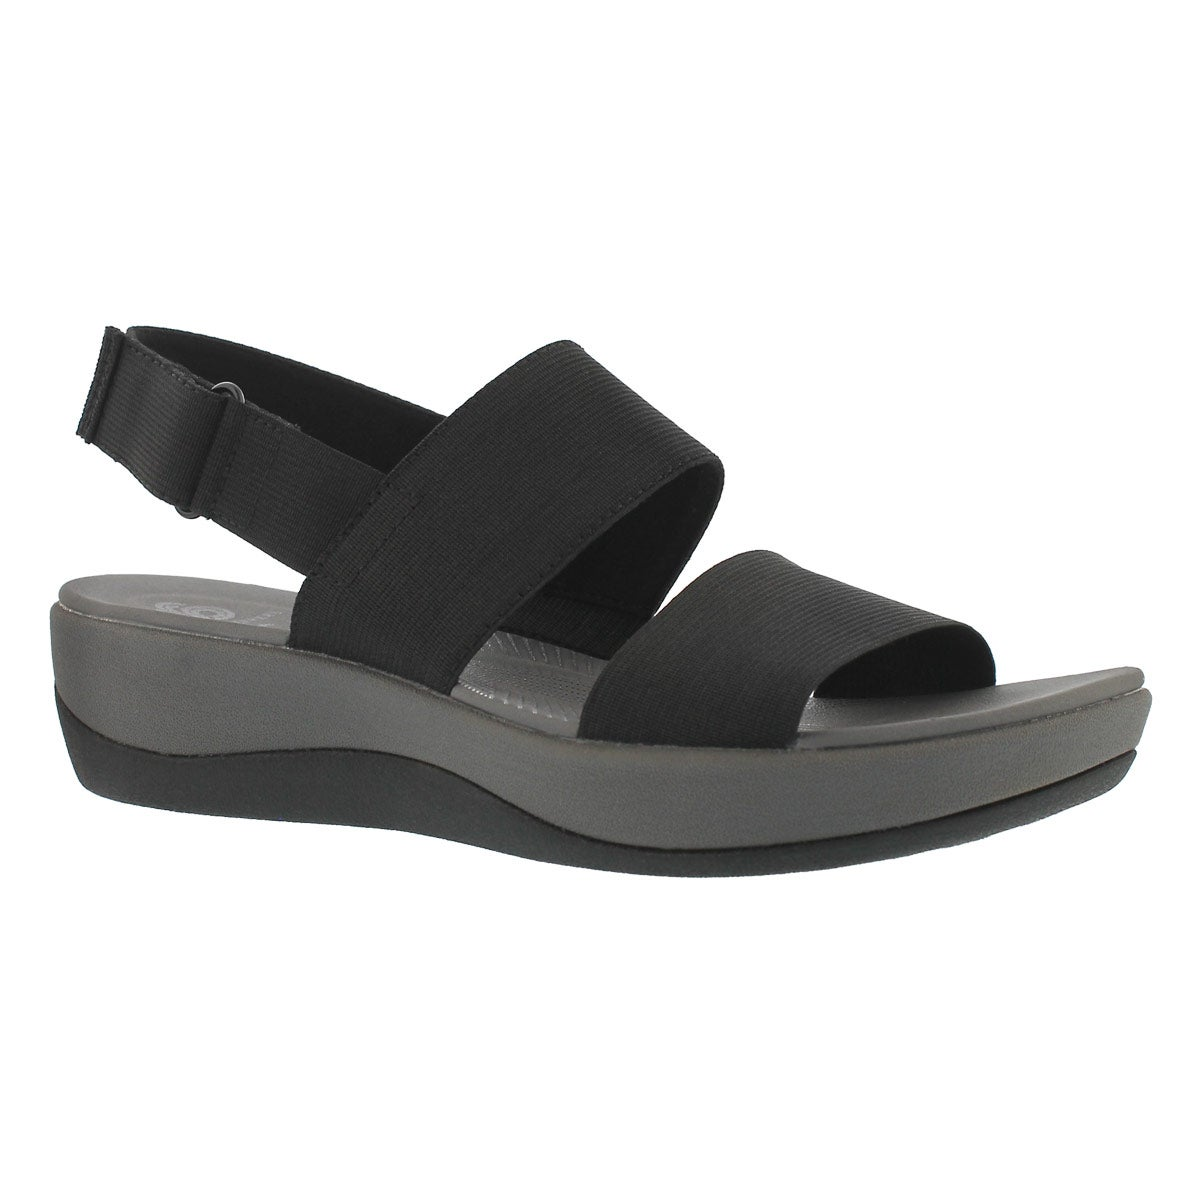 Women's ARLA JACORY black wedge sandals